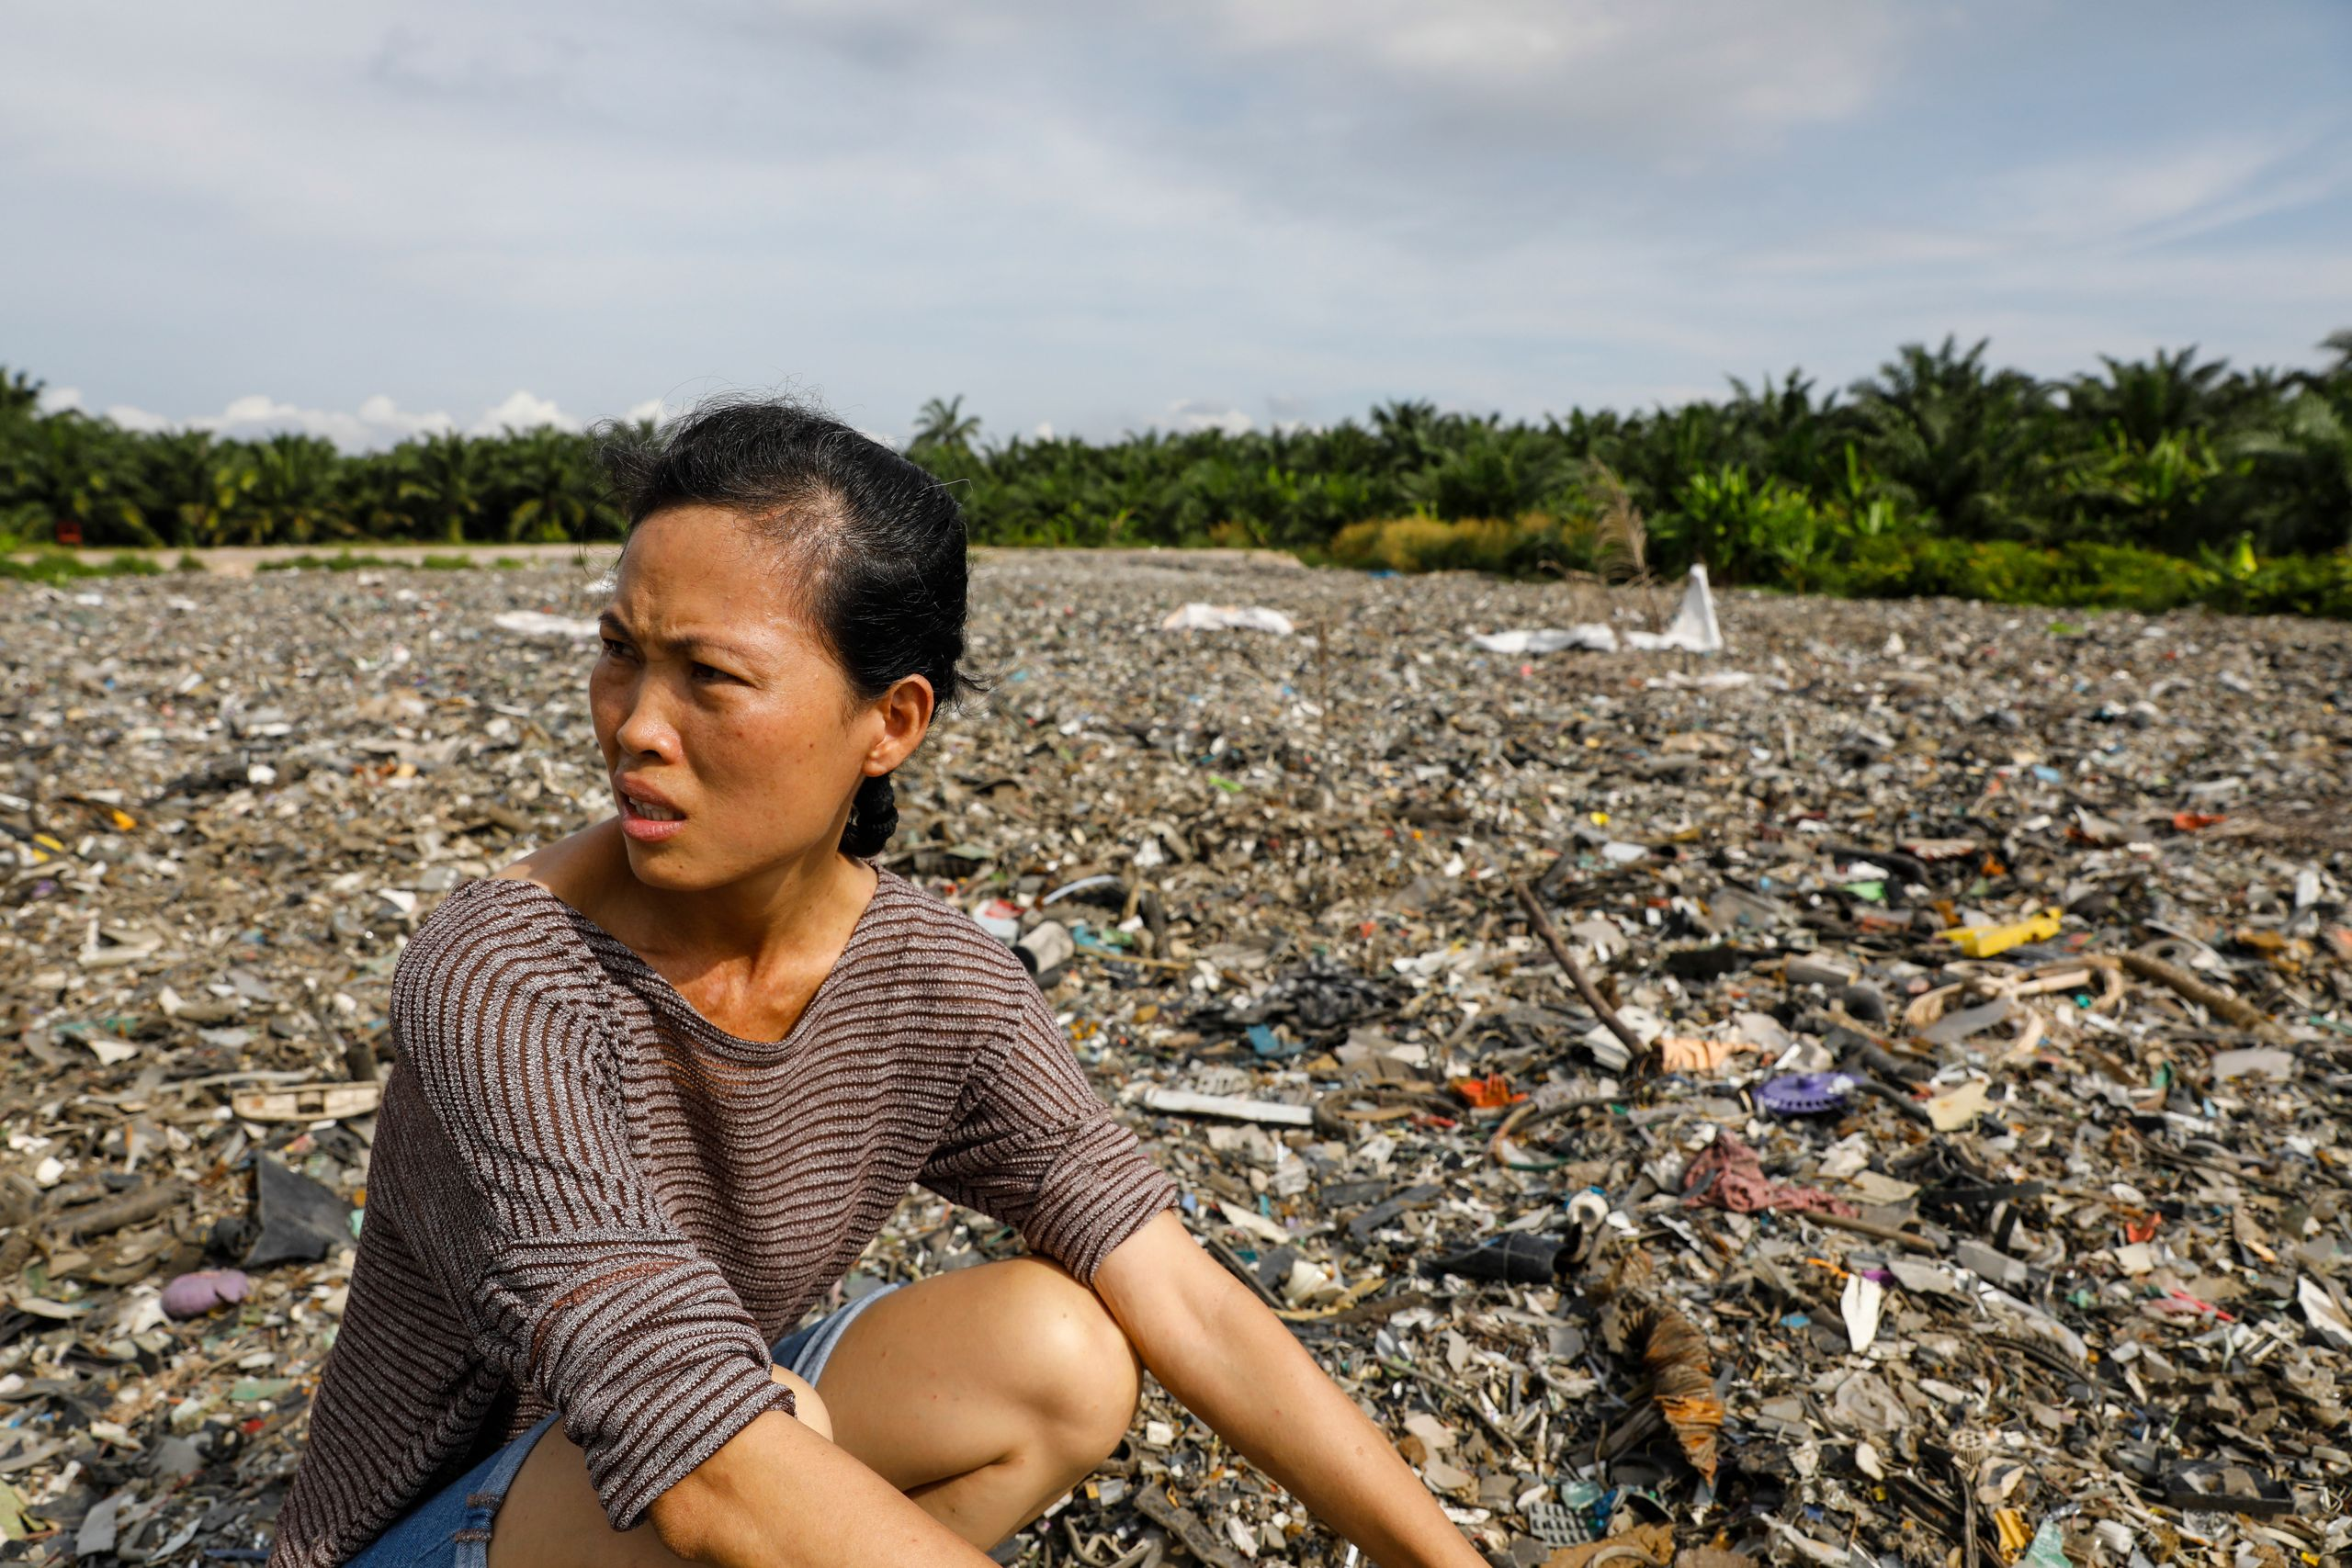 Pua Lay Peng, a resident-turned-activist, checks out an illegal dumping site near Jenjarom, Feb. 2. From 1950 to 2015, a stag